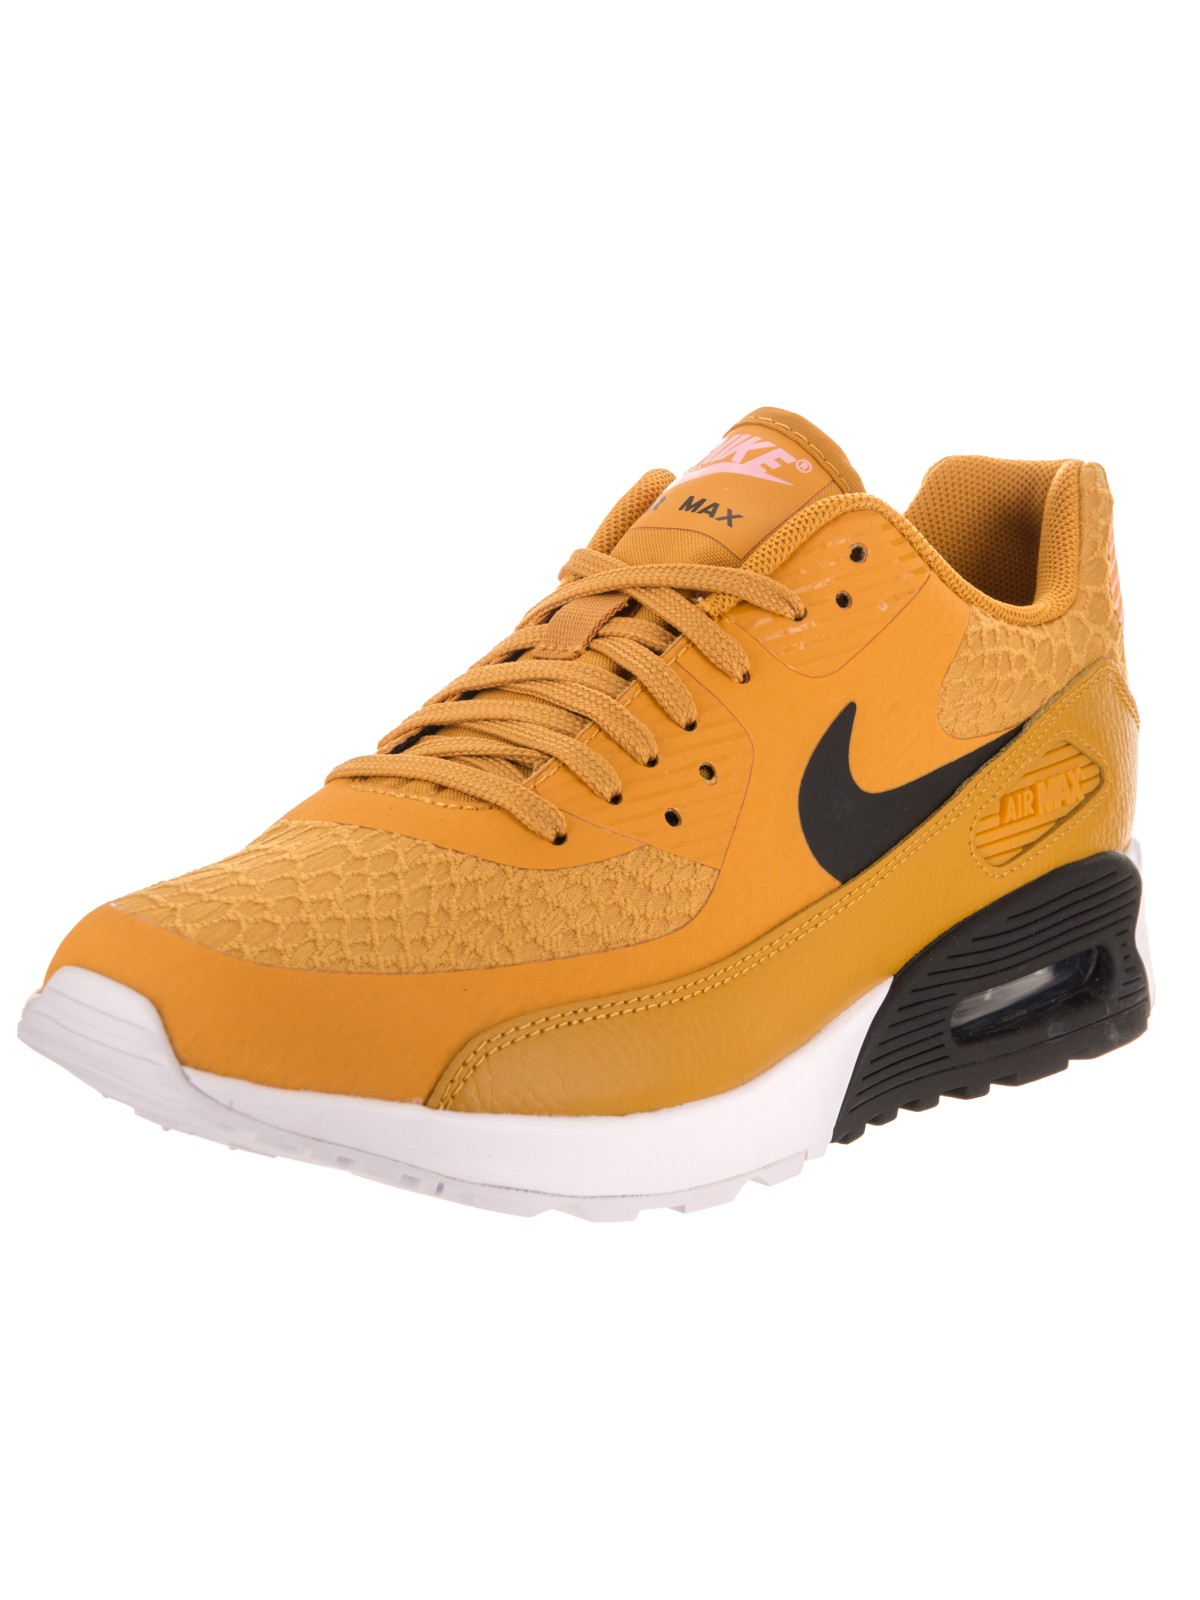 a4dc9df95af1 Nike Women s Air Max 90 Ultra 2.0 Running Shoe